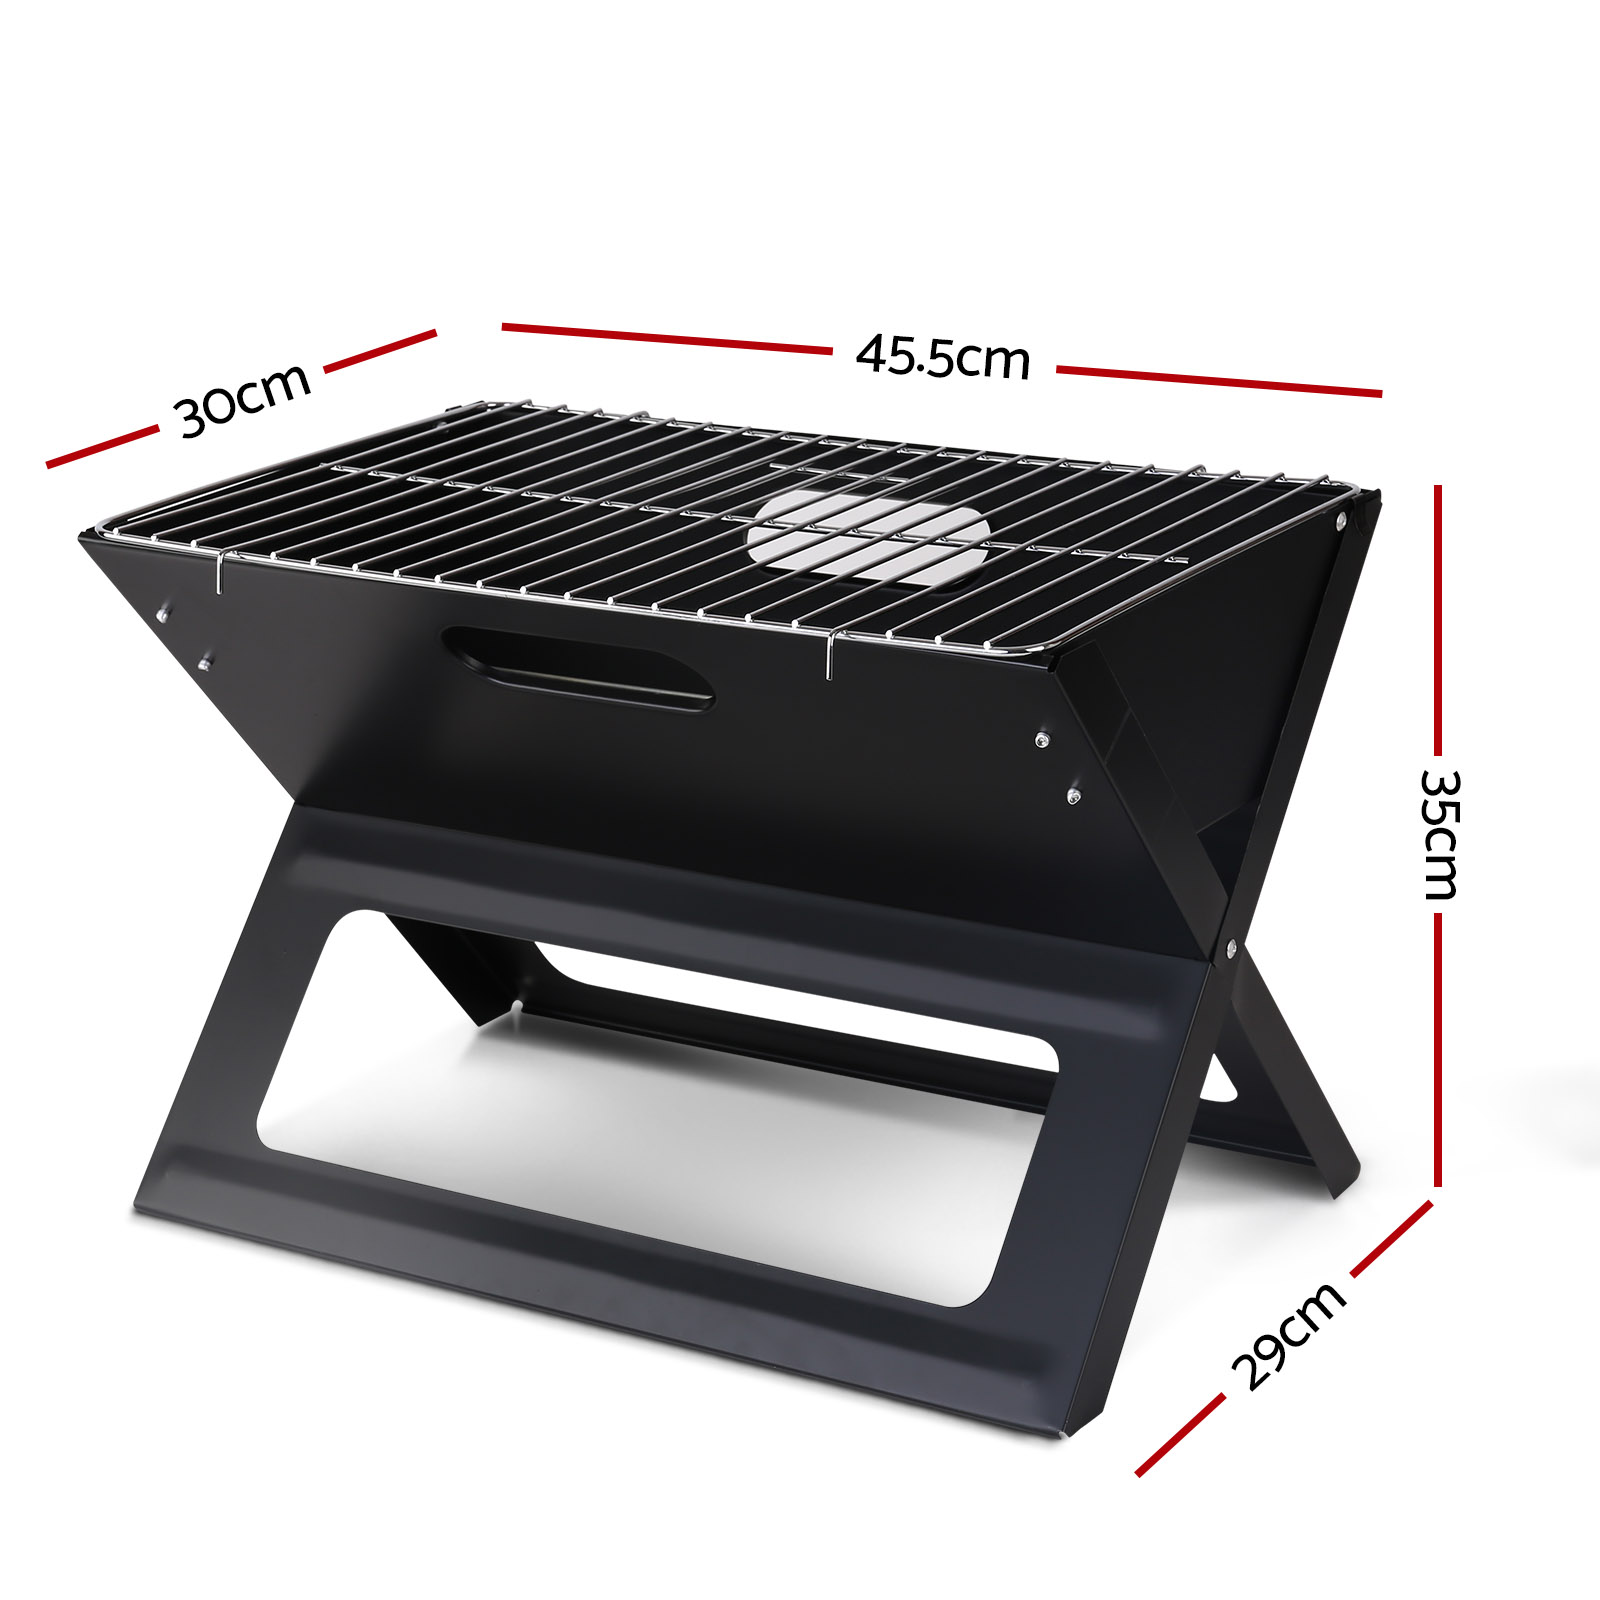 Brand New Grillz Notebook Portable Charcoal BBQ Grill Fast Free Shipping